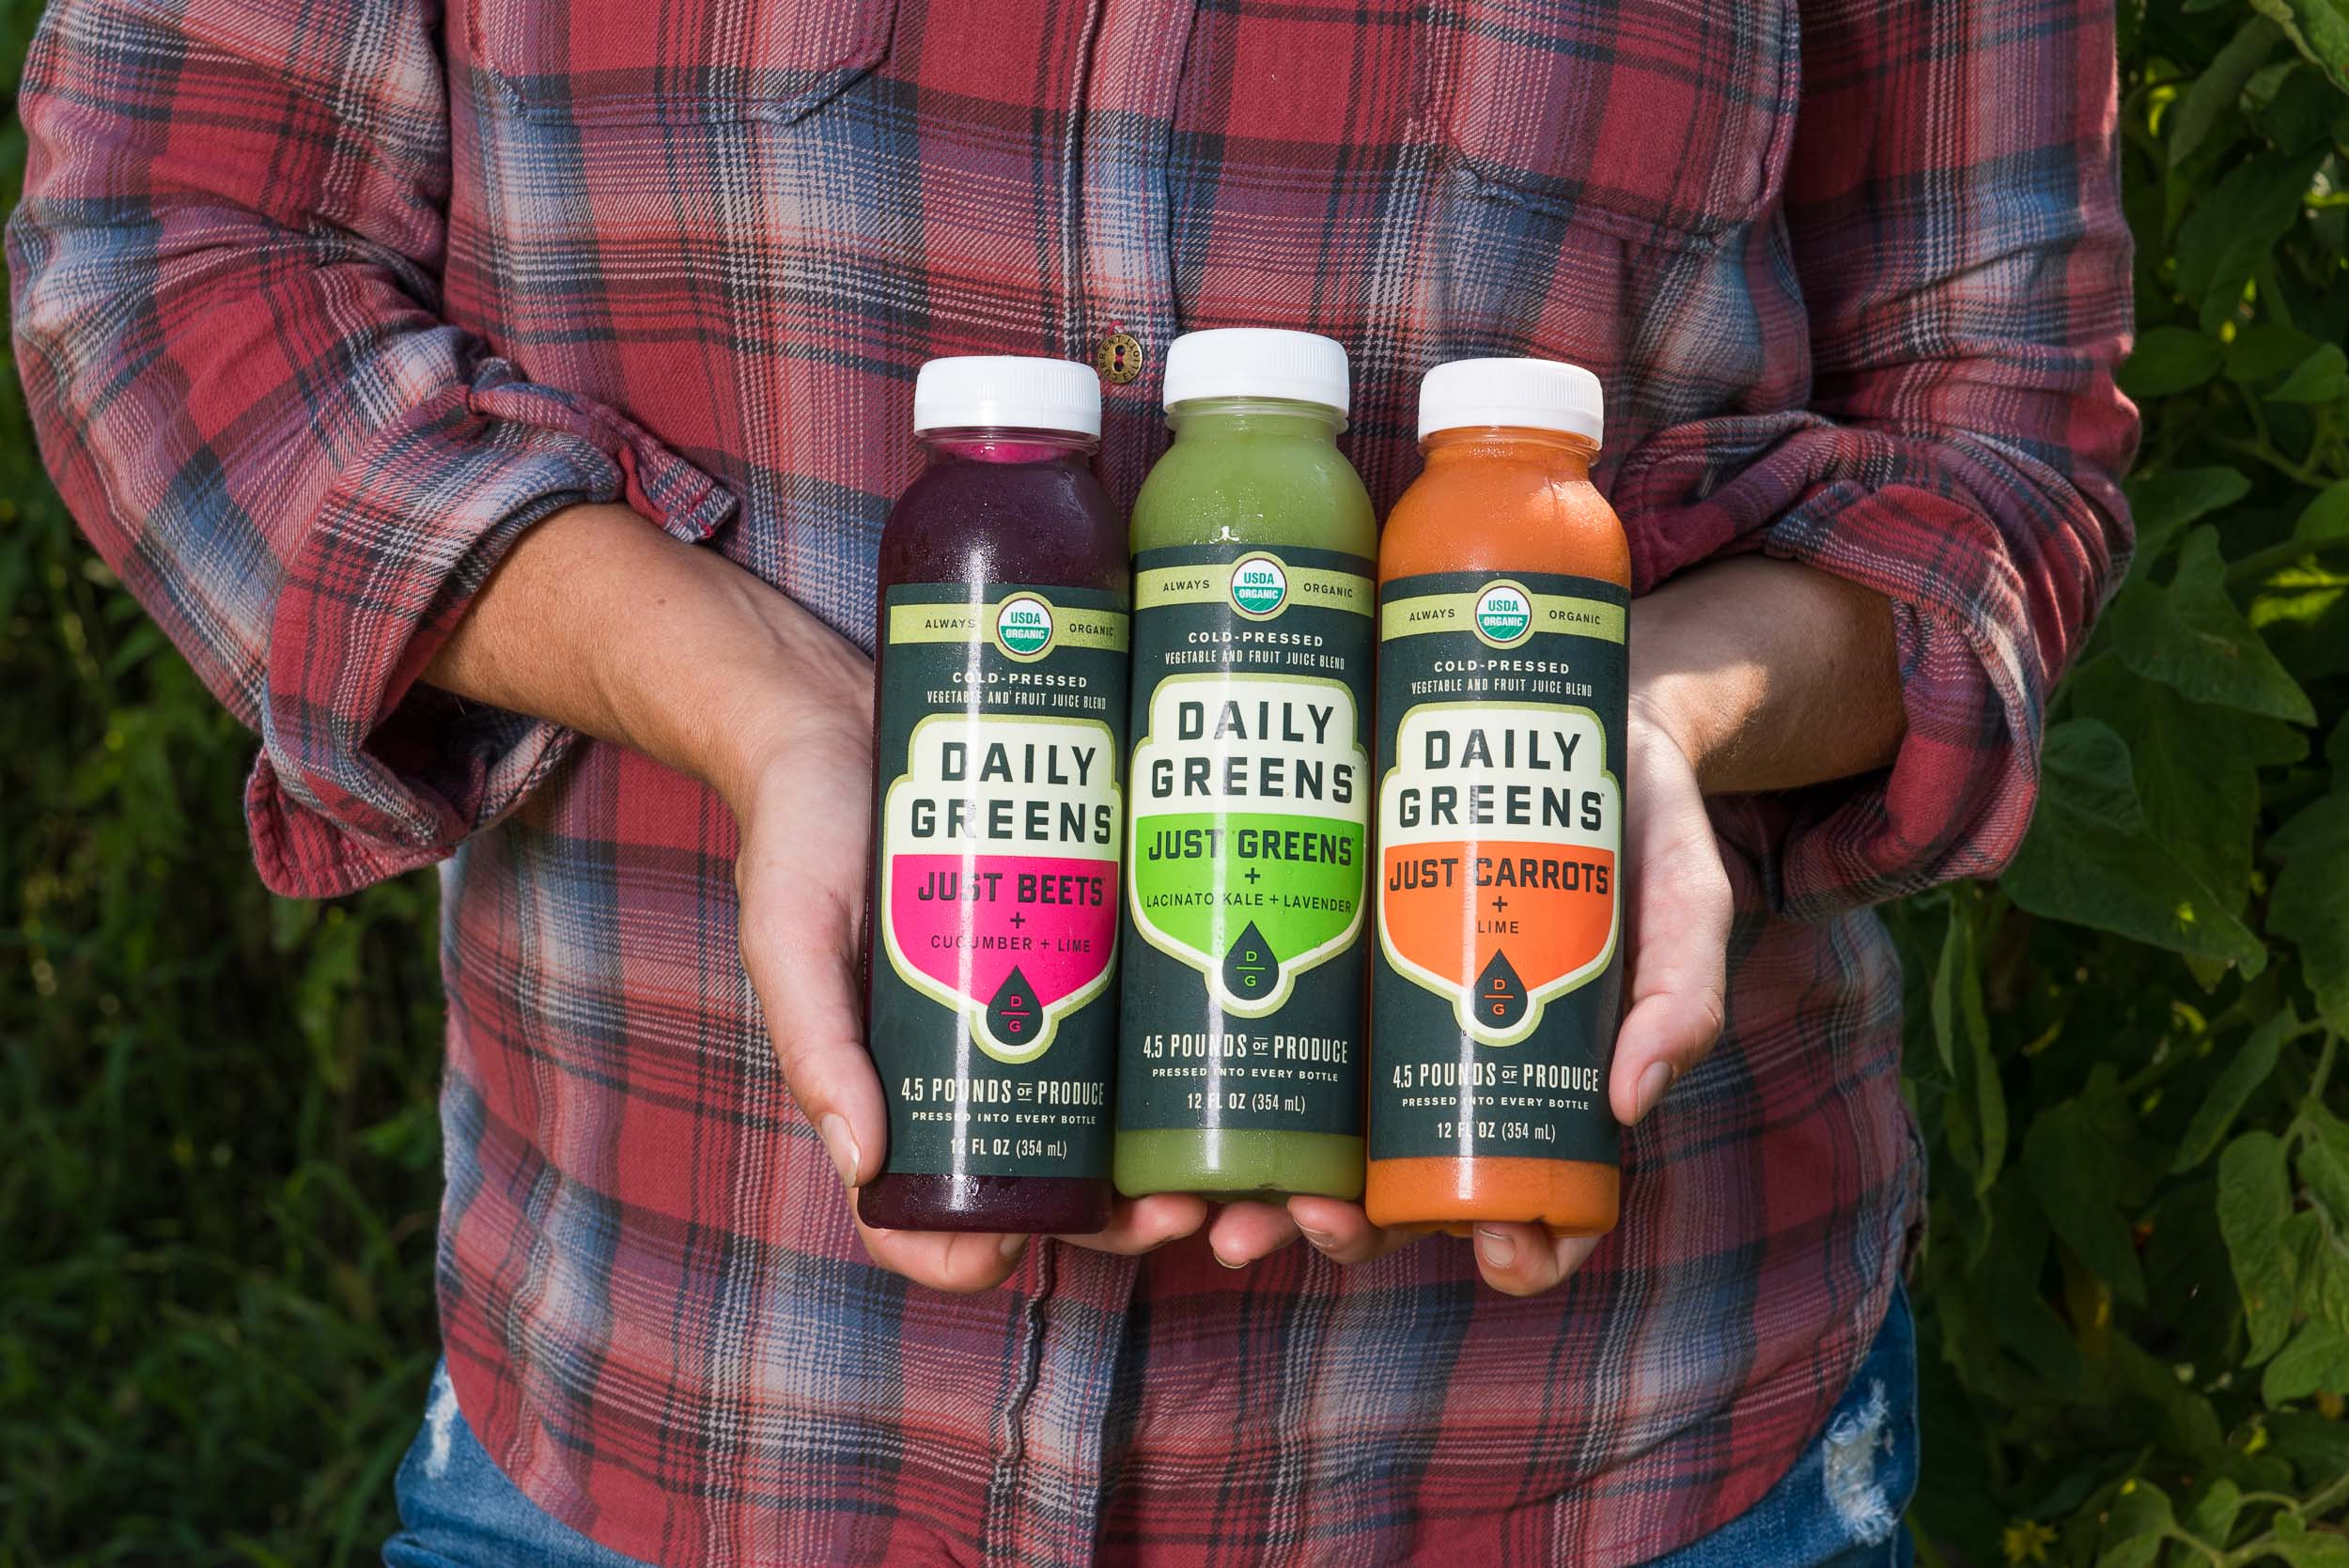 The new Just Veggies line launched in Summer of 2017